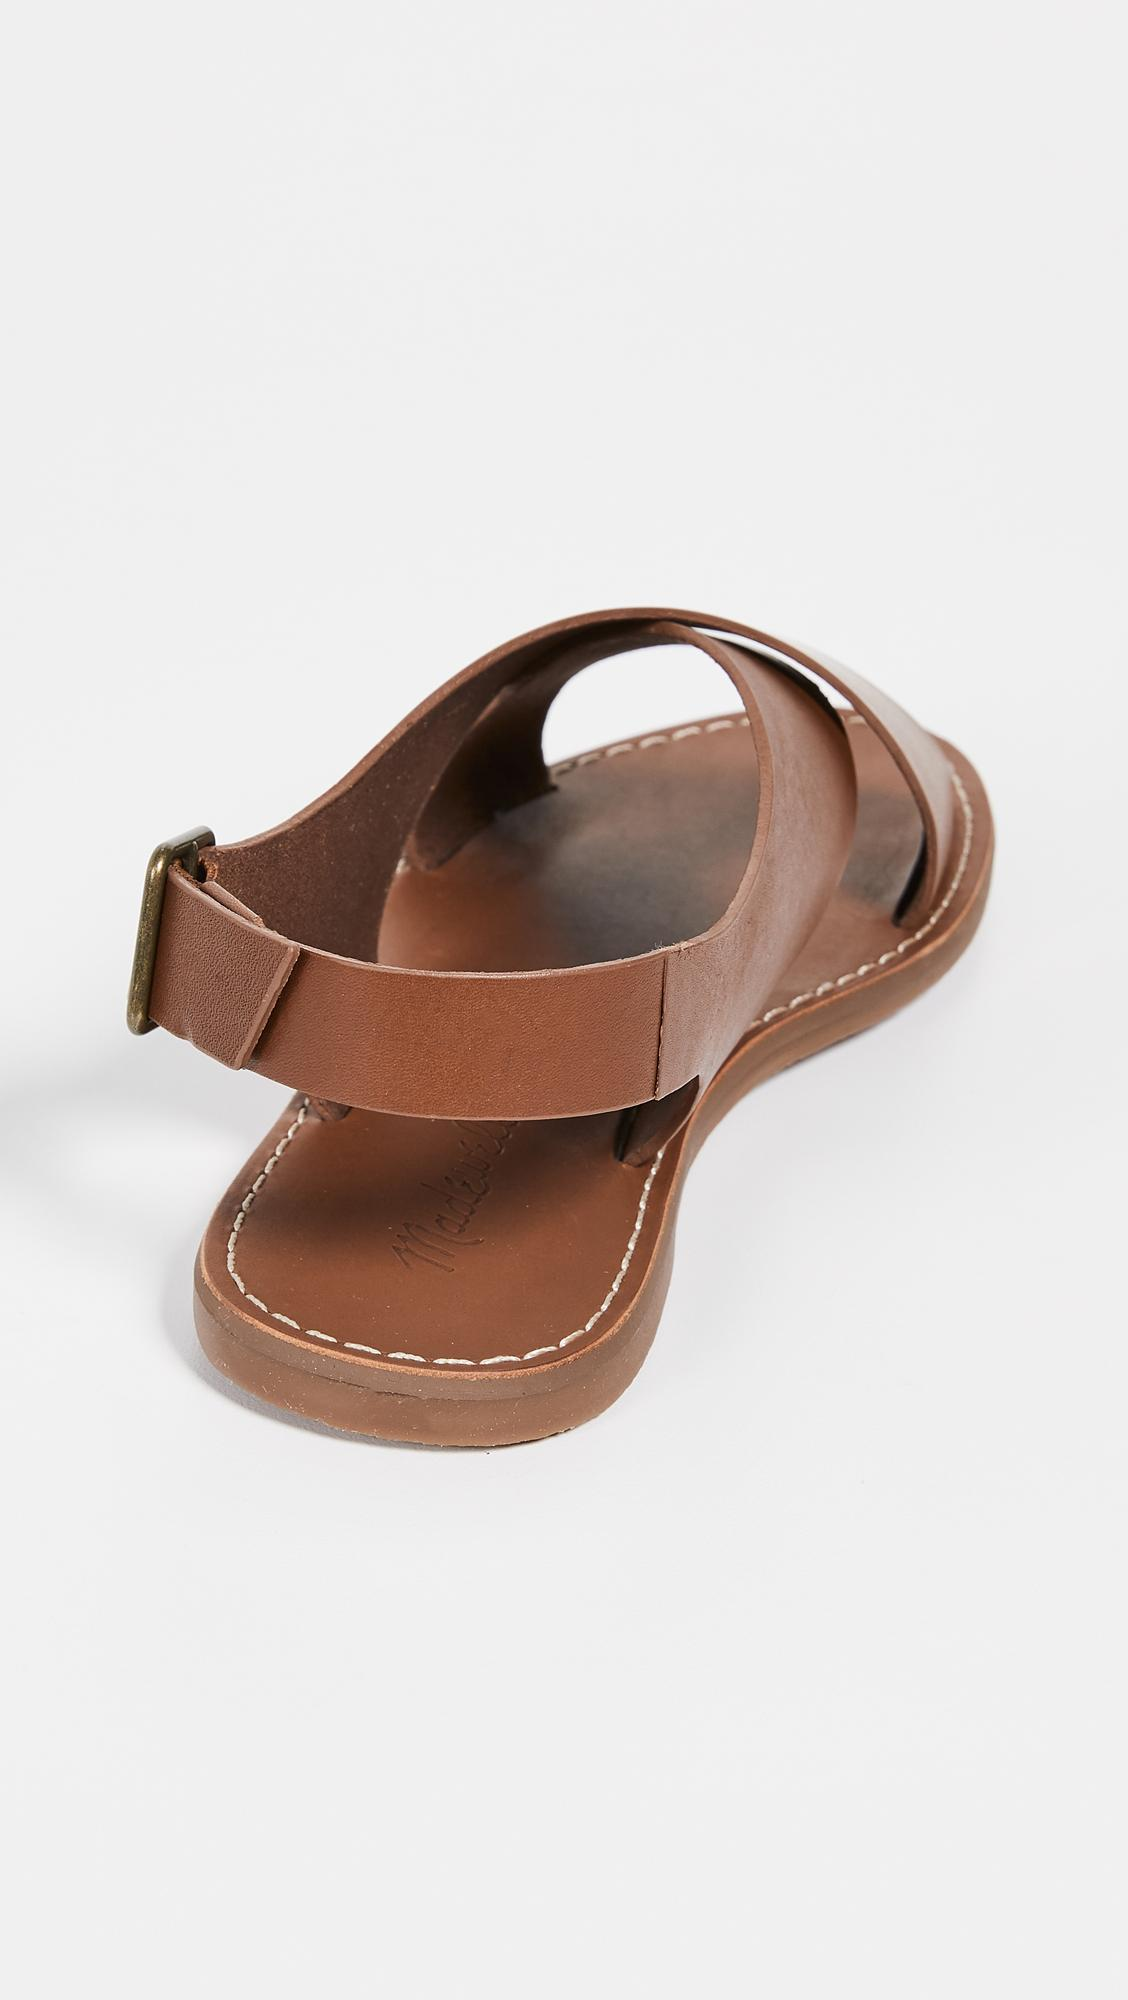 892a71a678becc Madewell - Brown Boardwalk Crossover Sandals - Lyst. View fullscreen